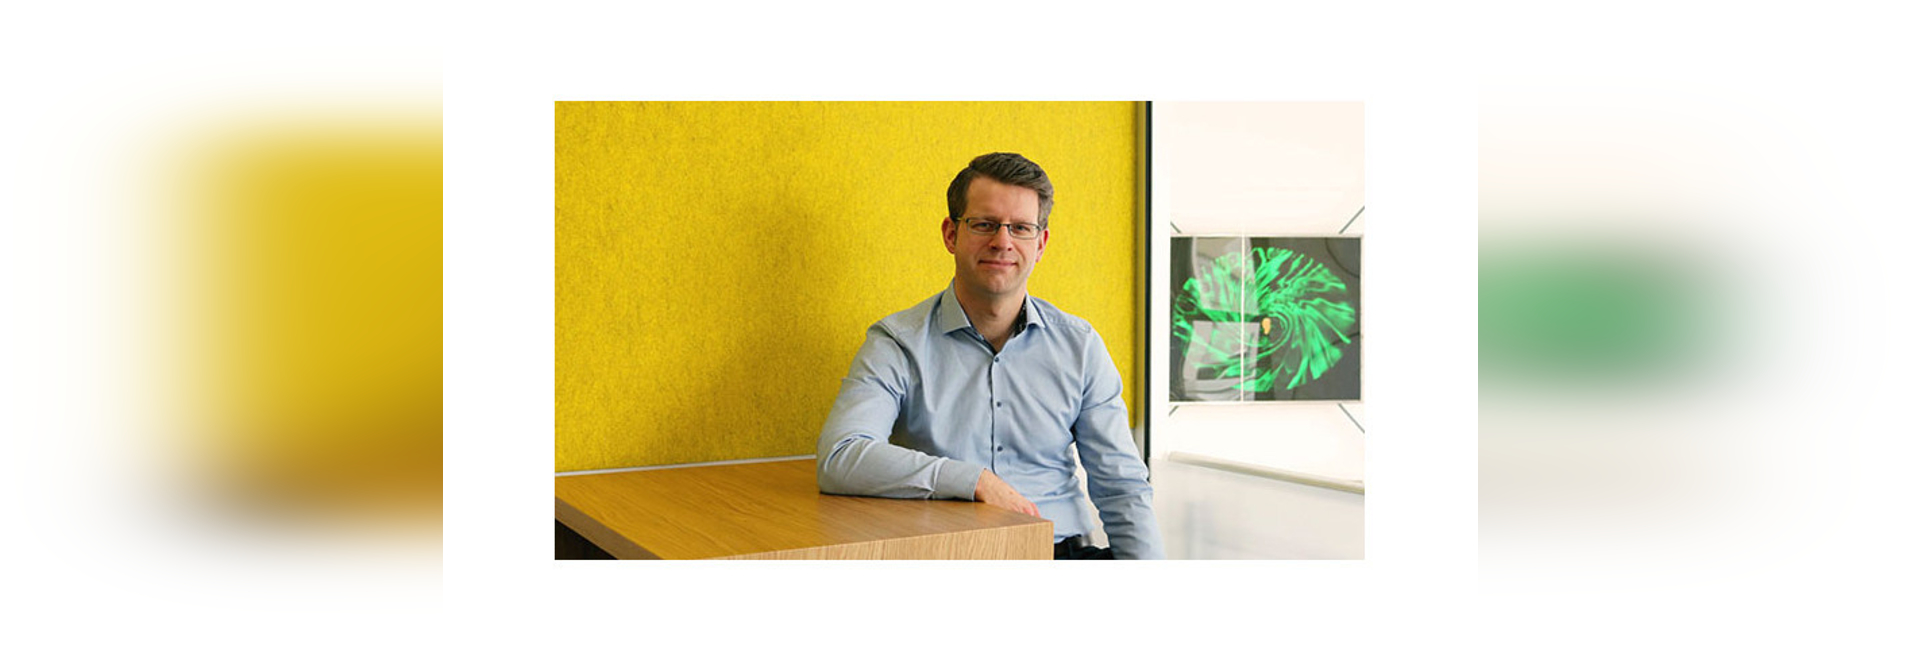 All about plant proteins - Interview with Sales Engineer Matthias Aschenbrenner